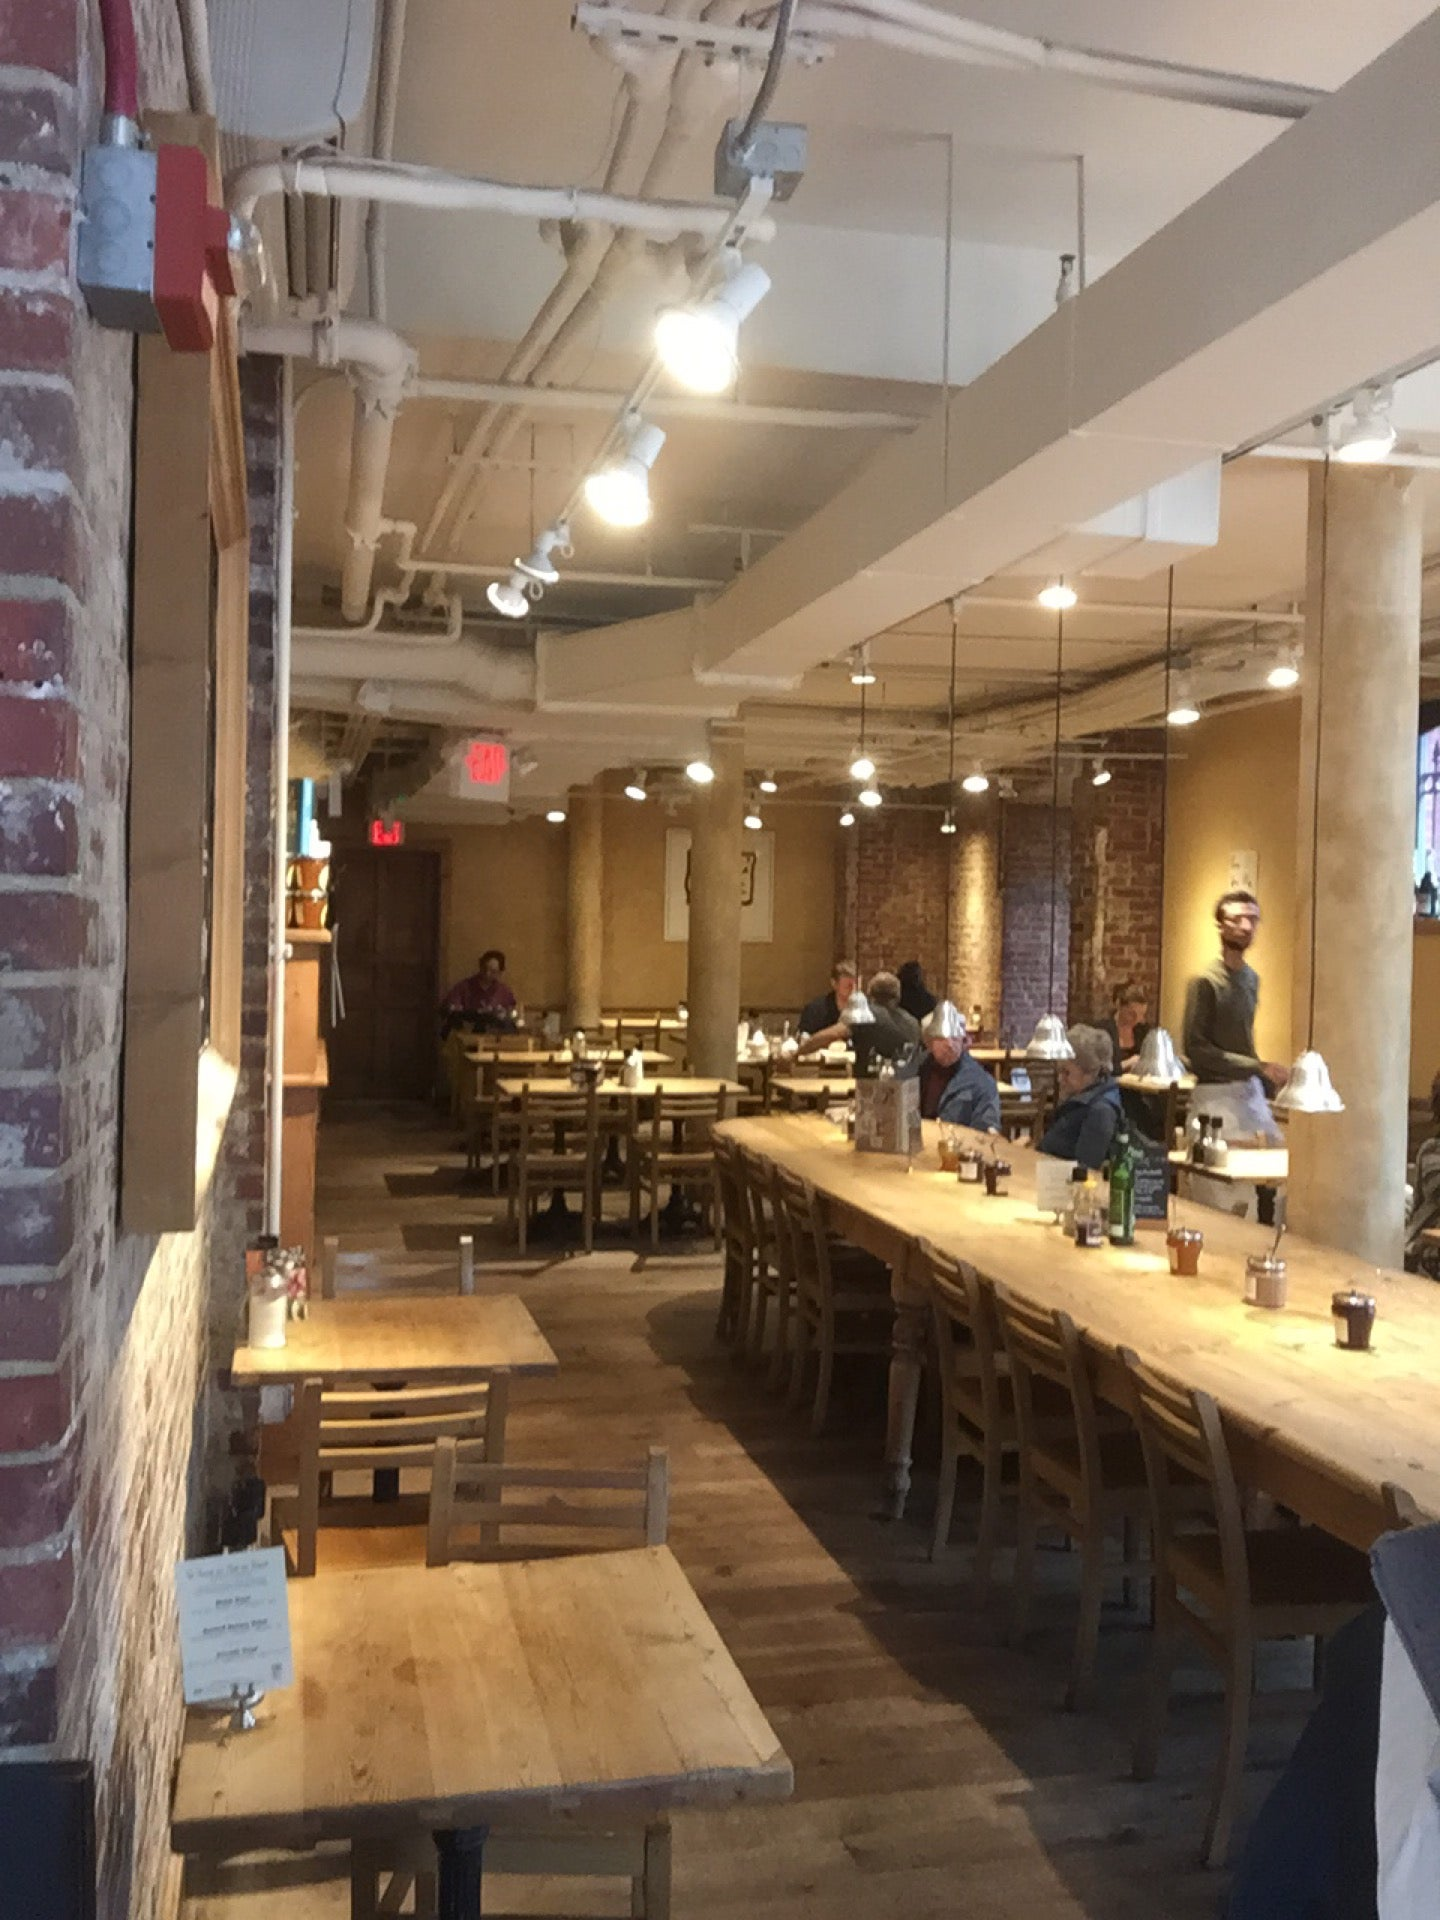 Le Pain Quotidien,baguette,bakery,blaine mansion,bread,breakfast,brunch,cafe,coffee,dupont circle,eggs,good_mark,lunch,organic,pastries,retail,salads,vegan,vegetarian